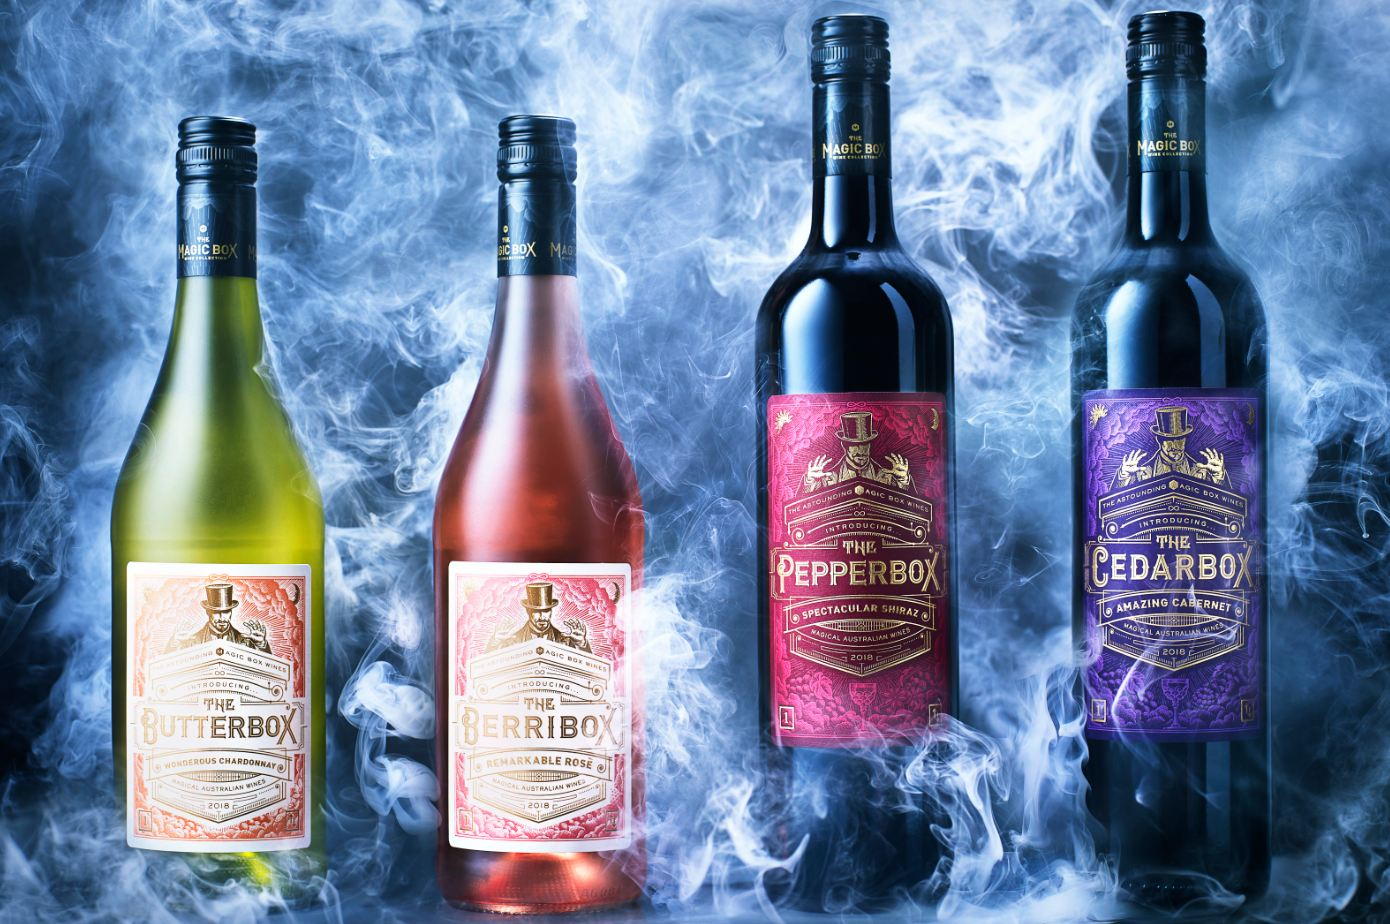 Wine Online Australia Casella Casts A Spell On Millennials With A Little Bit Of Magic